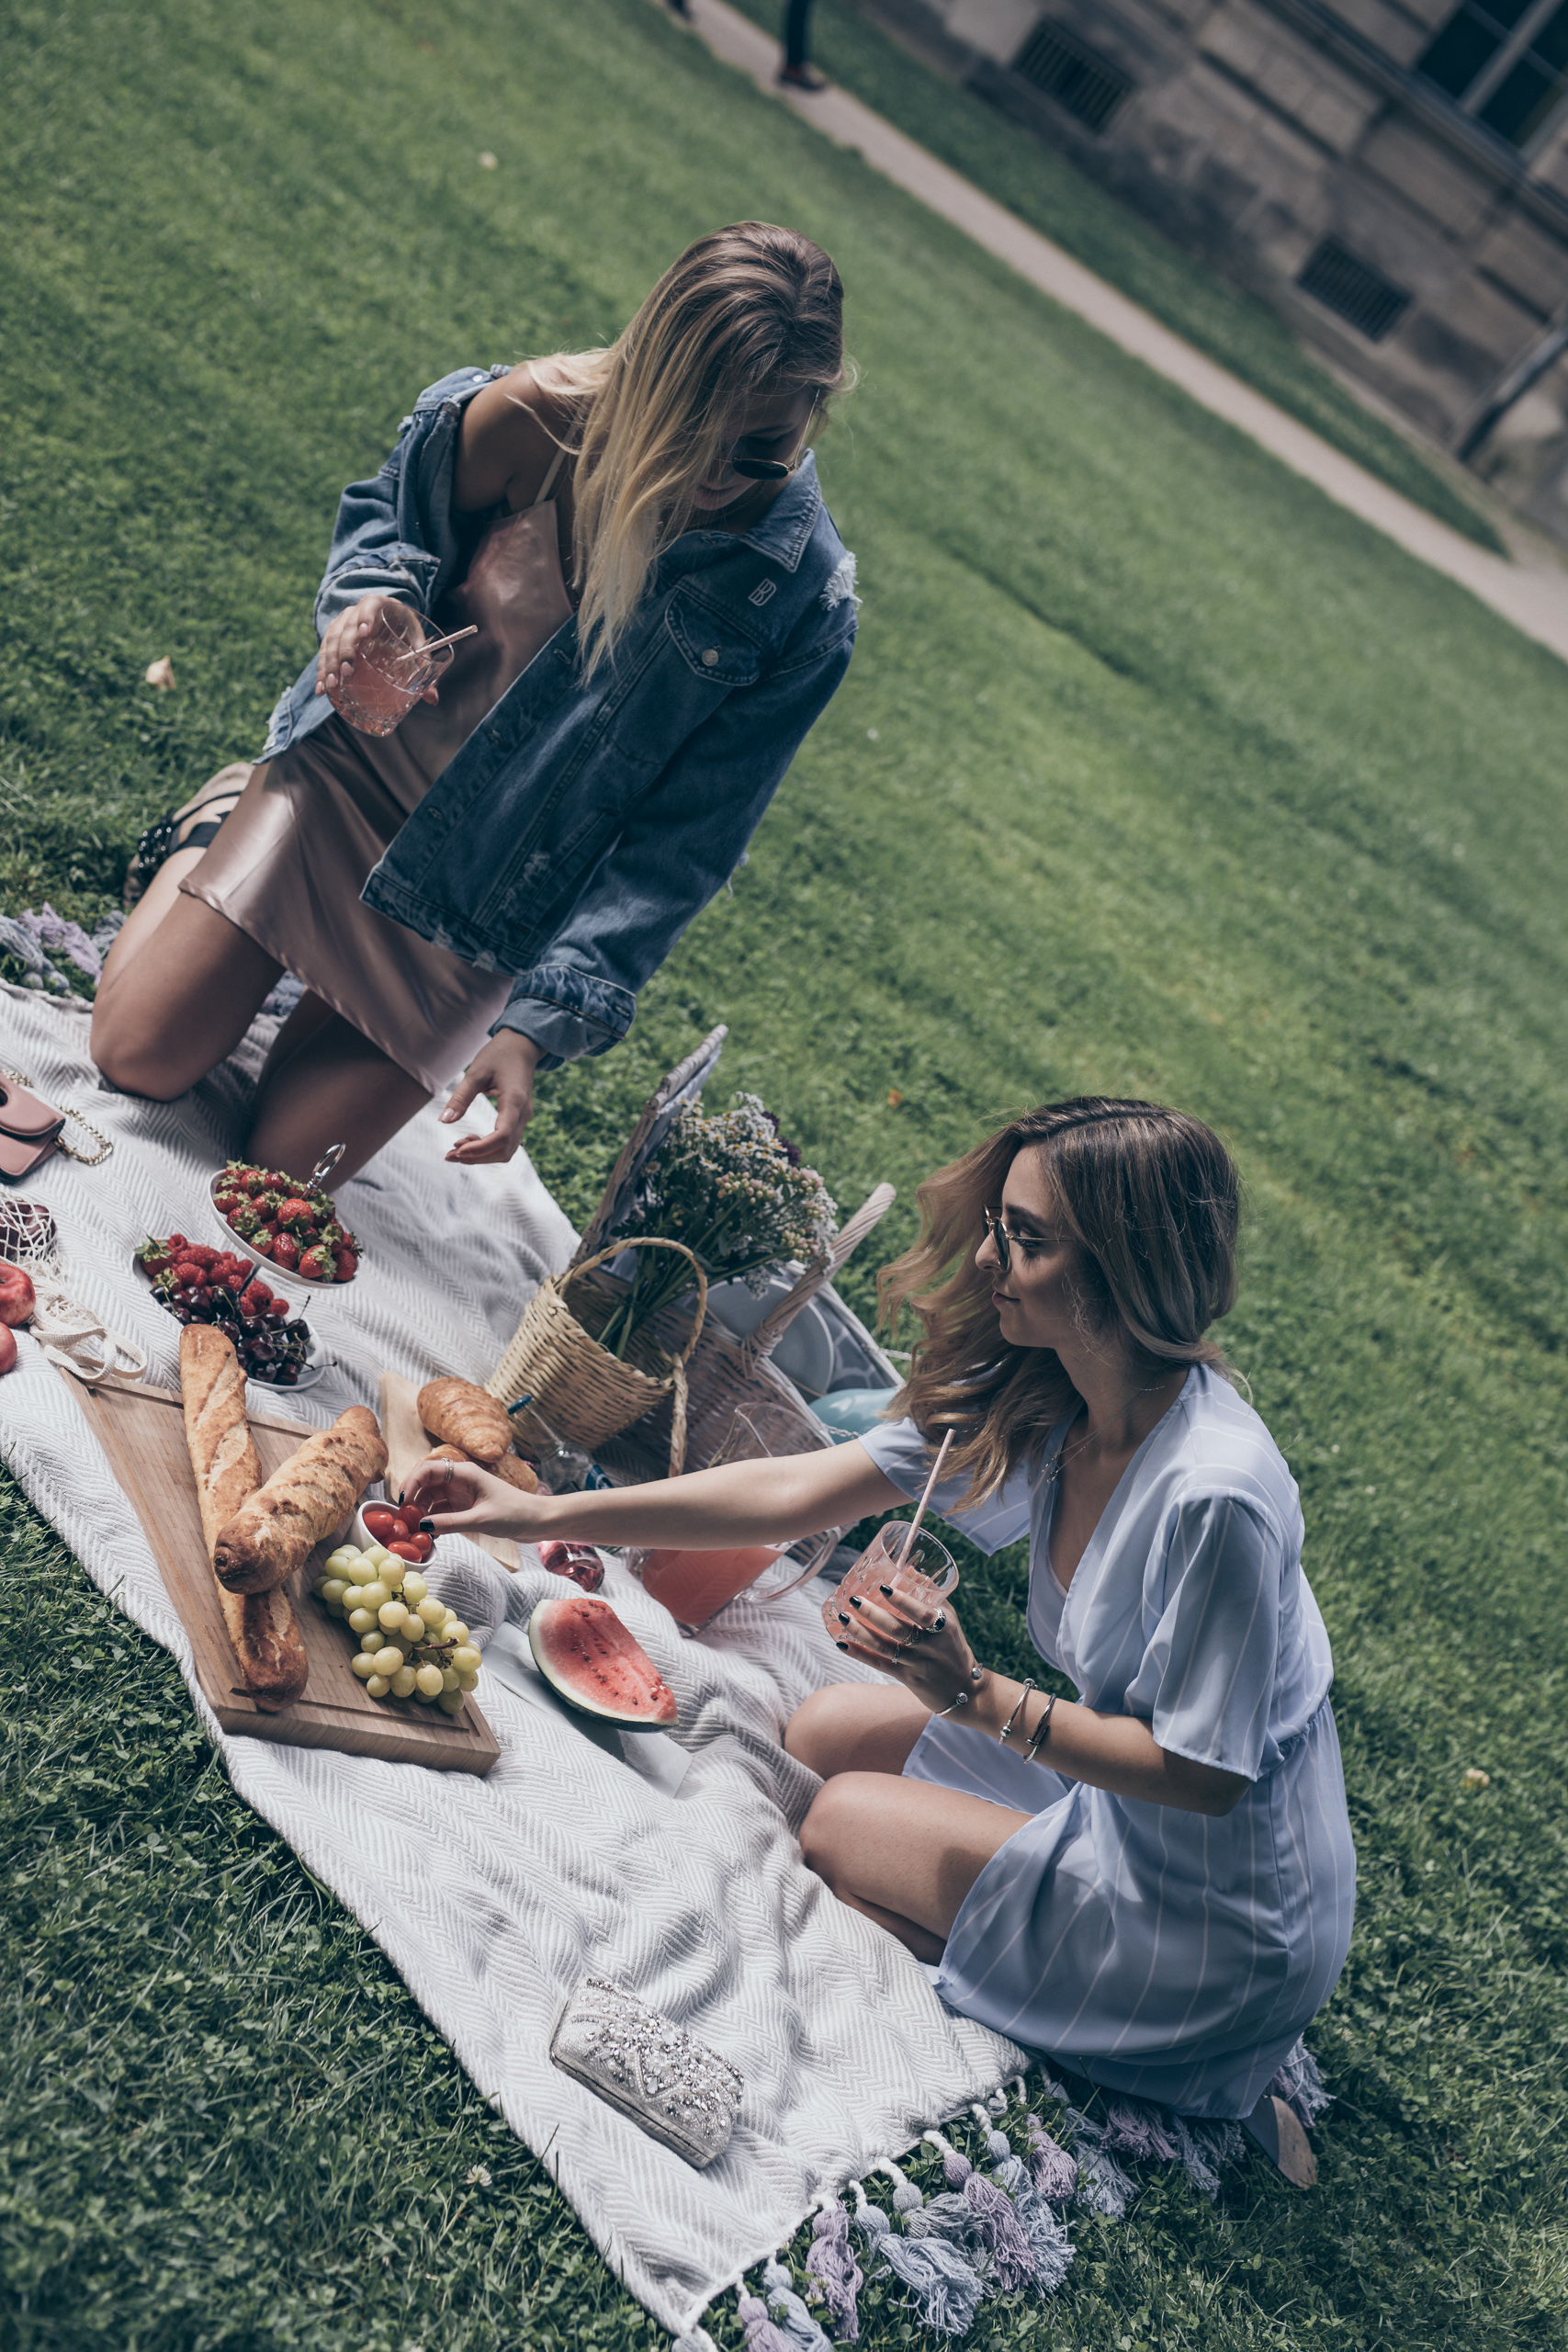 picnic table ideas food blanket basket best friends girl squad friendship WantGetRepeat